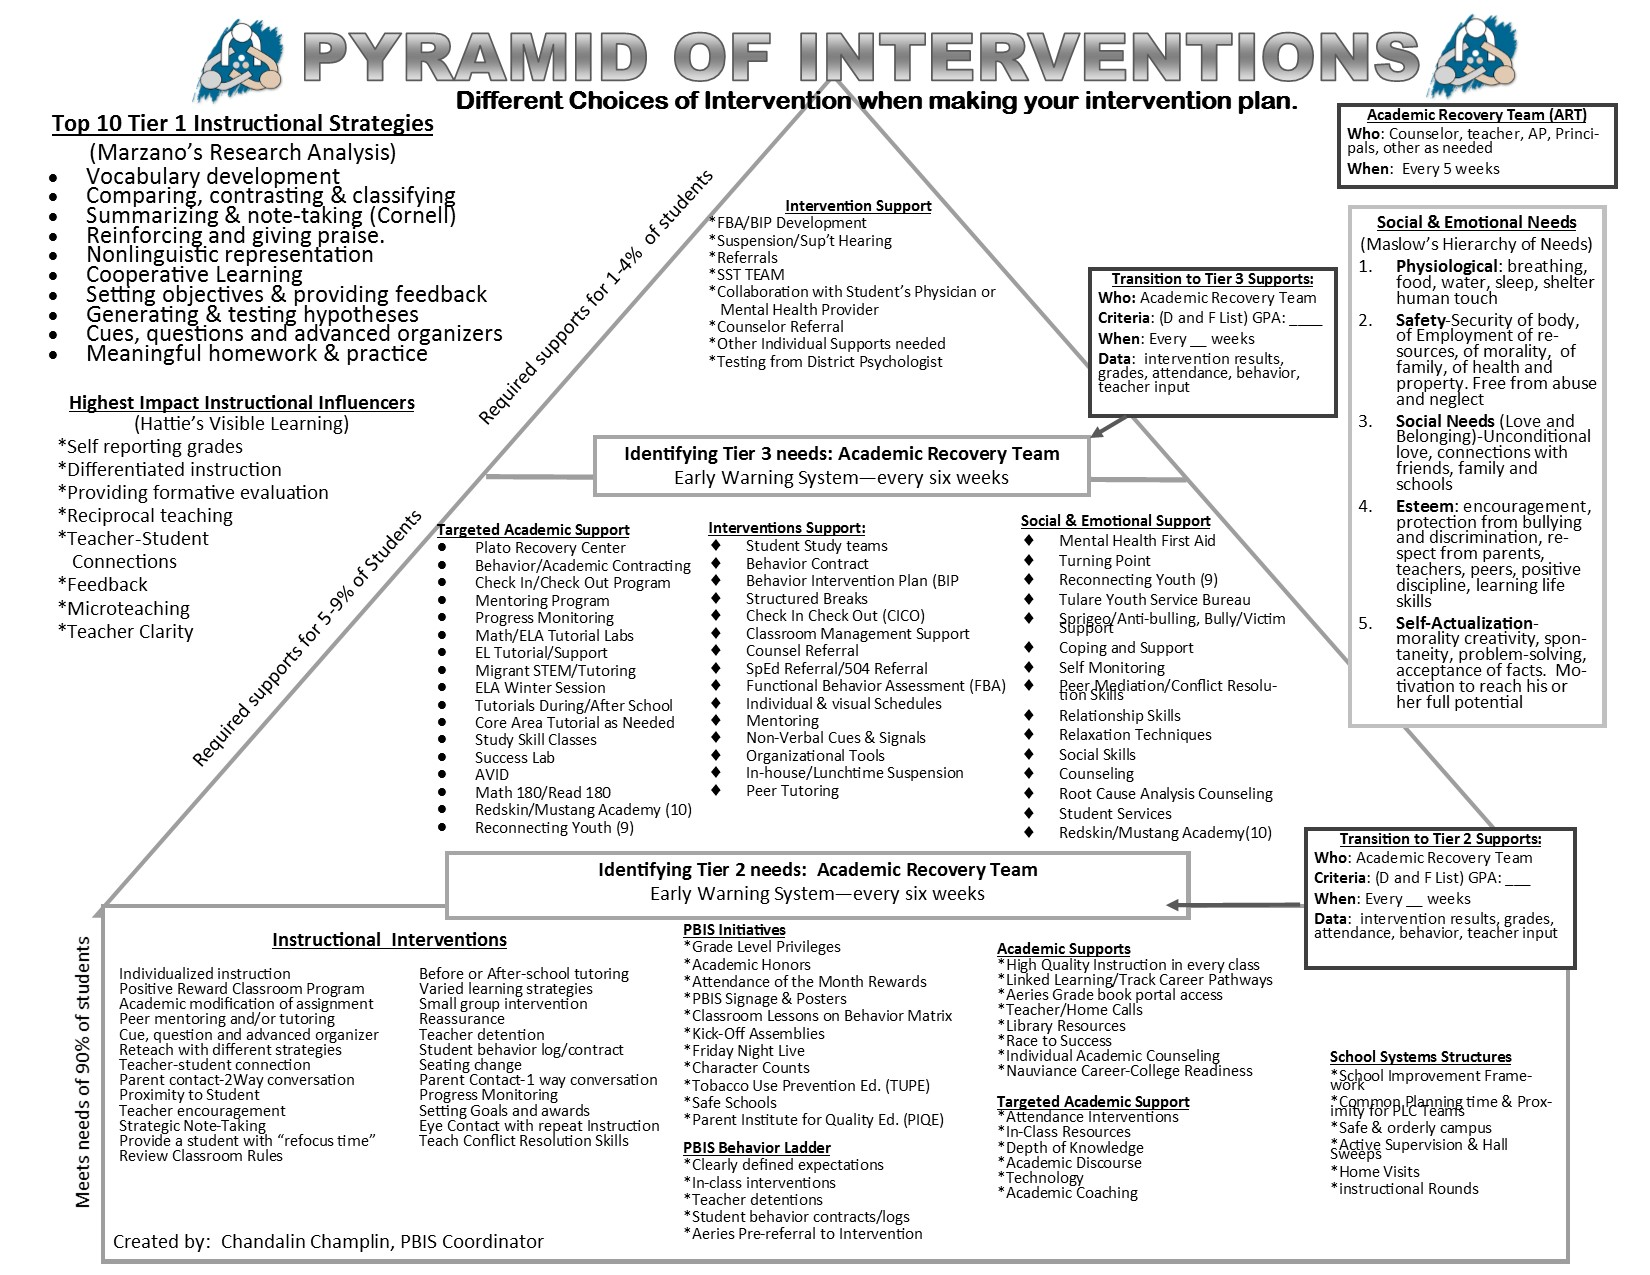 Pyramid of Interventions information